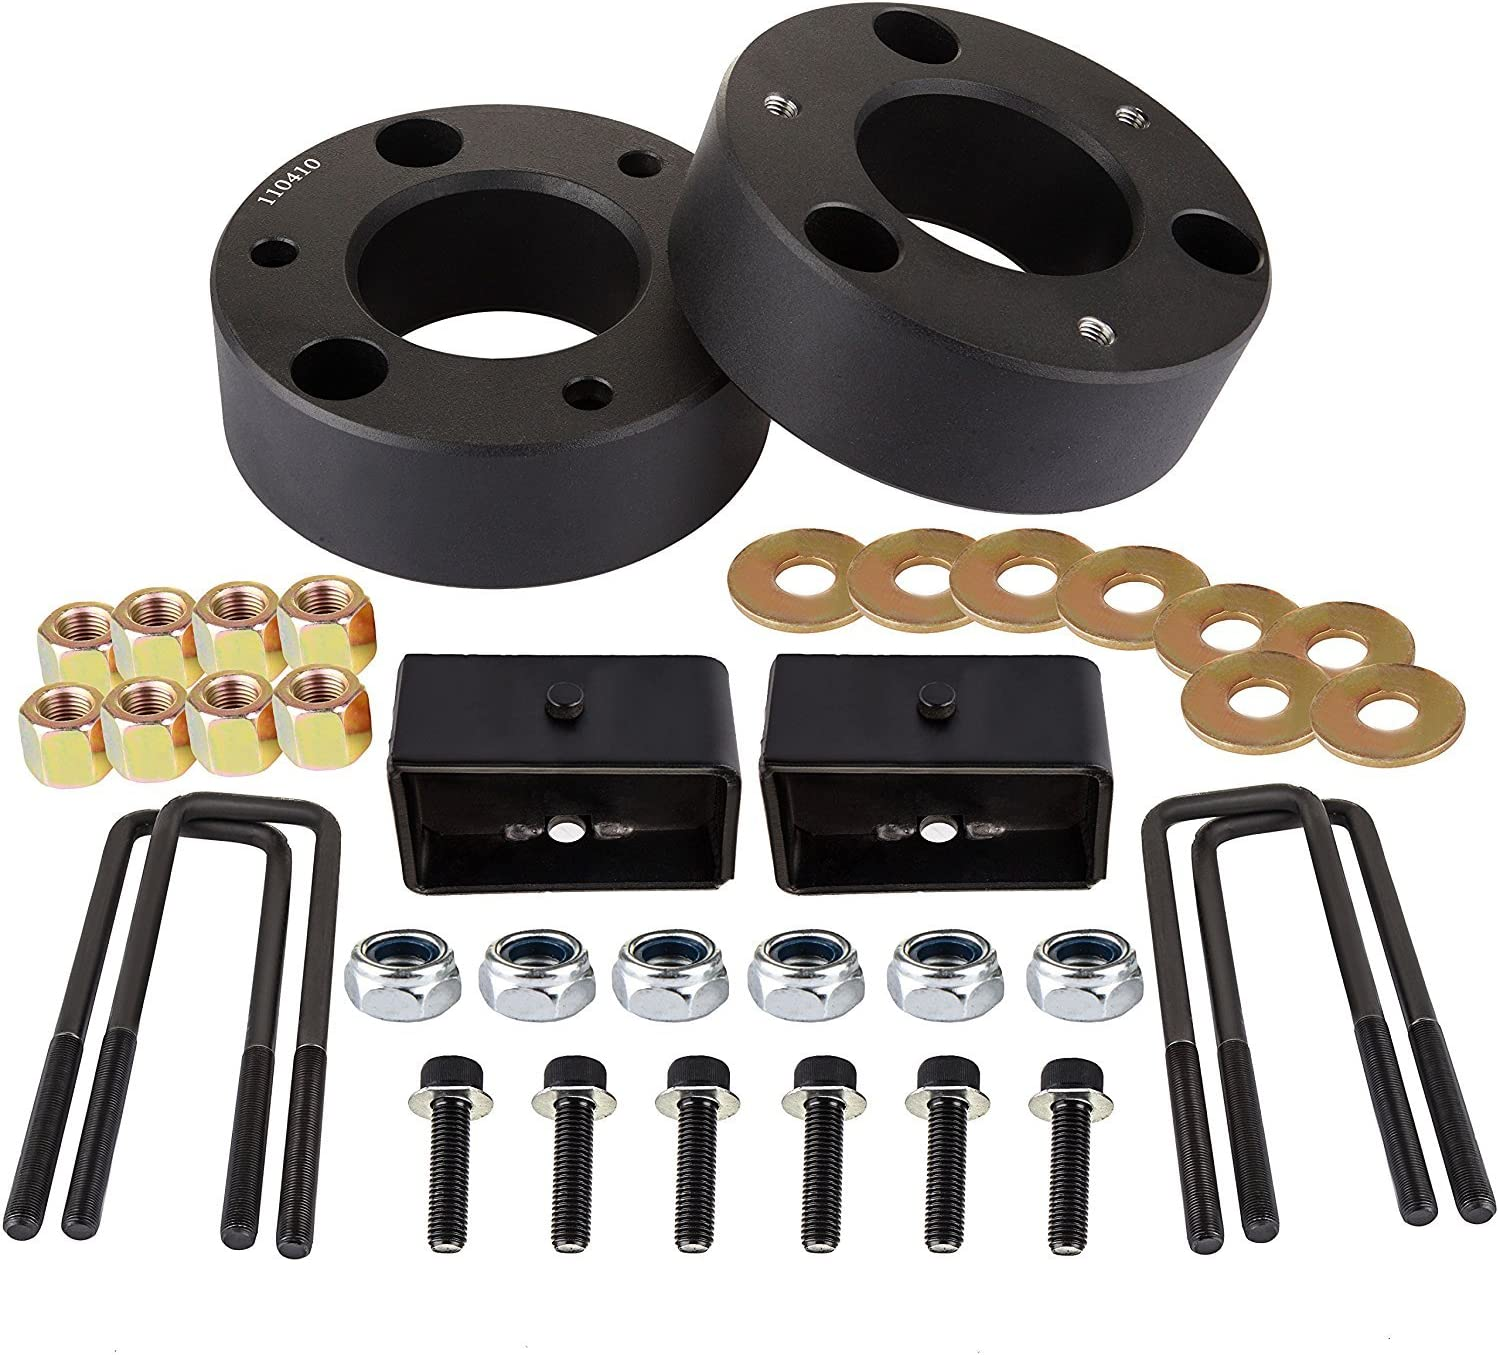 ECCPP Replacement for 3 inch Free shipfree Shipping Cheap Bargain Gift and kit Leveling ki 2